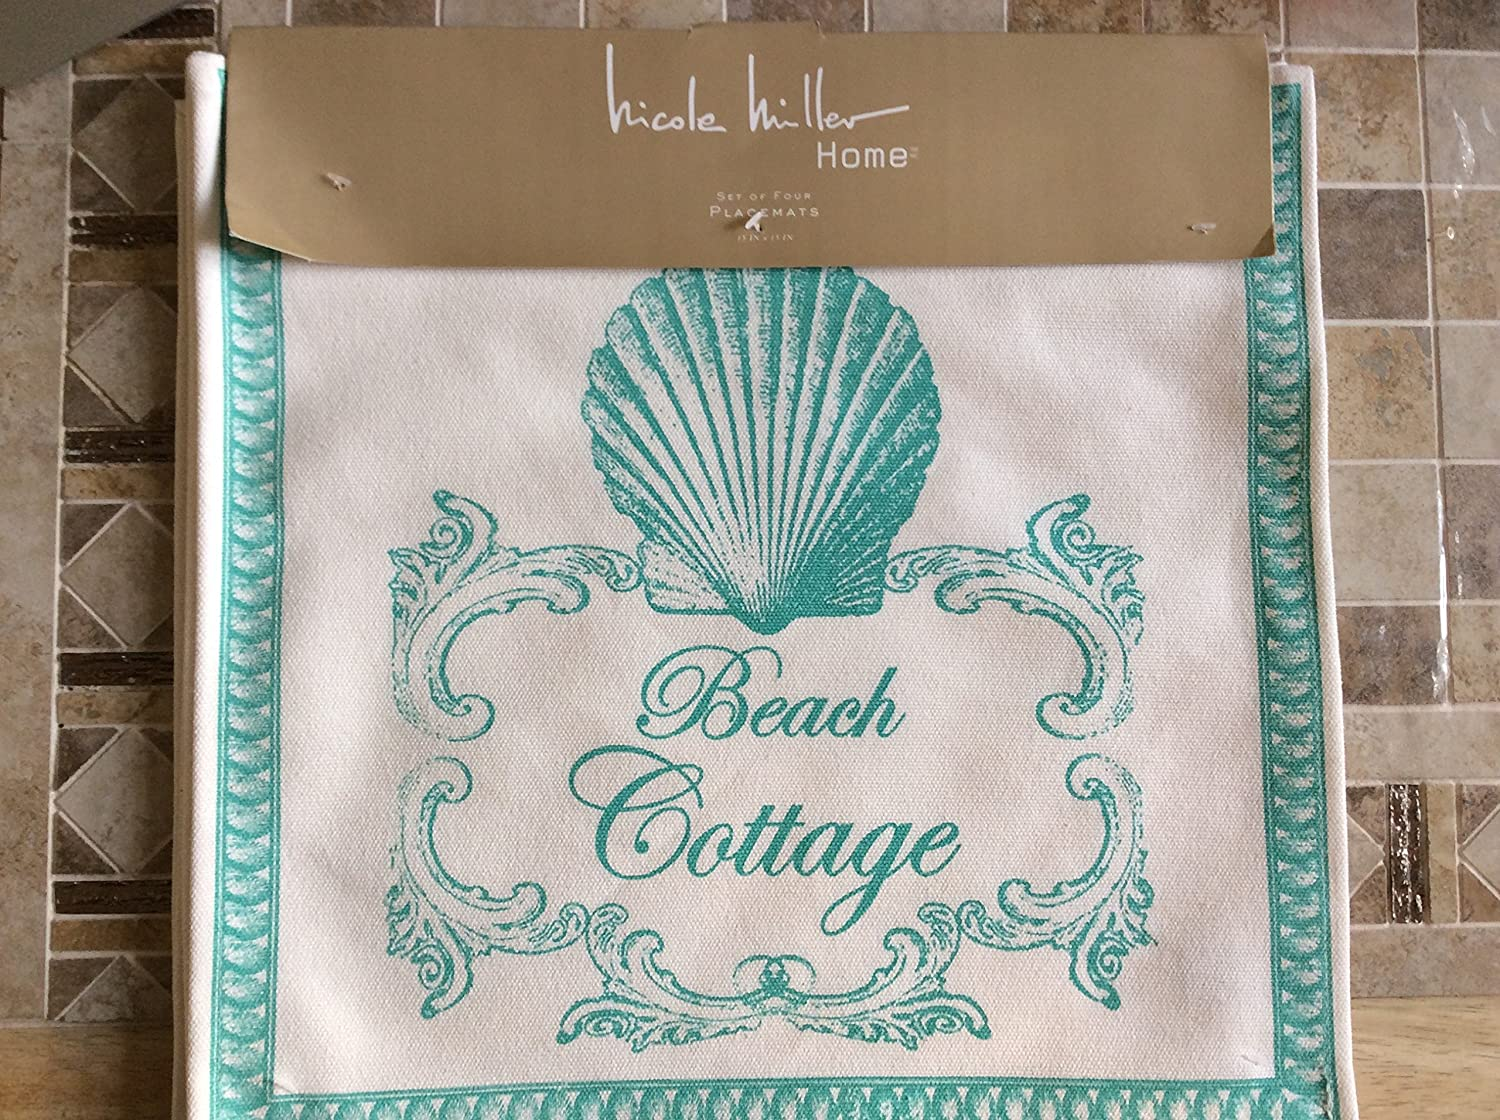 Nicole Miller Turquoise Beach Cottage Set of (4) Placemats